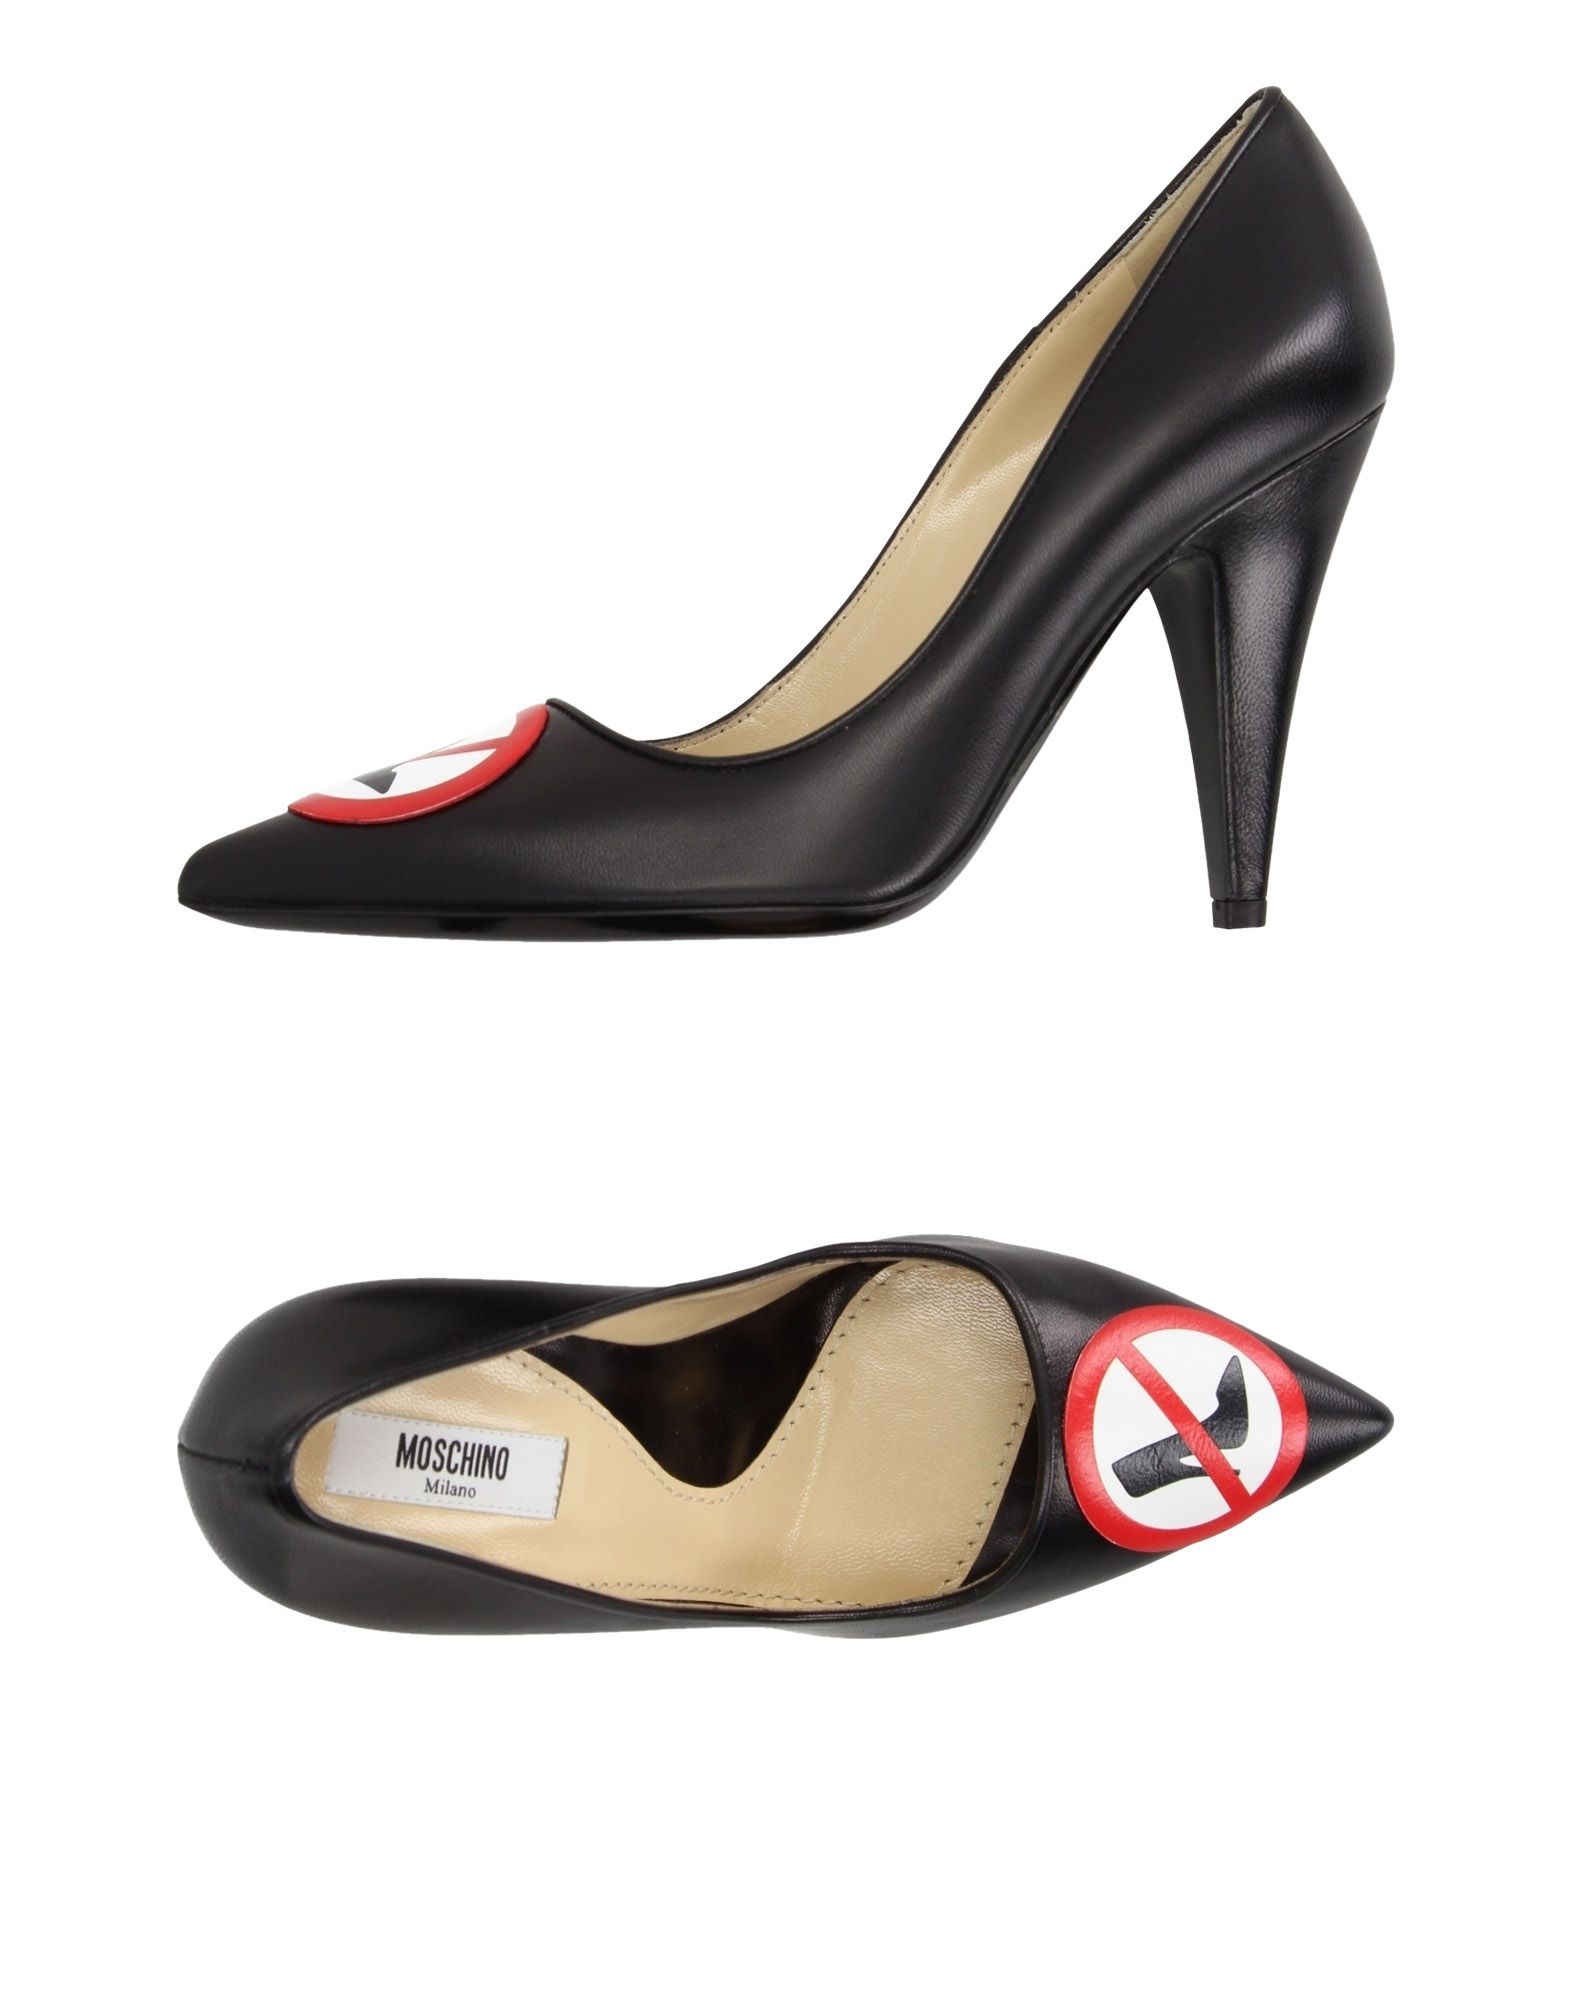 Stilvolle billige Schuhe Moschino Pumps Damen  11184271OT